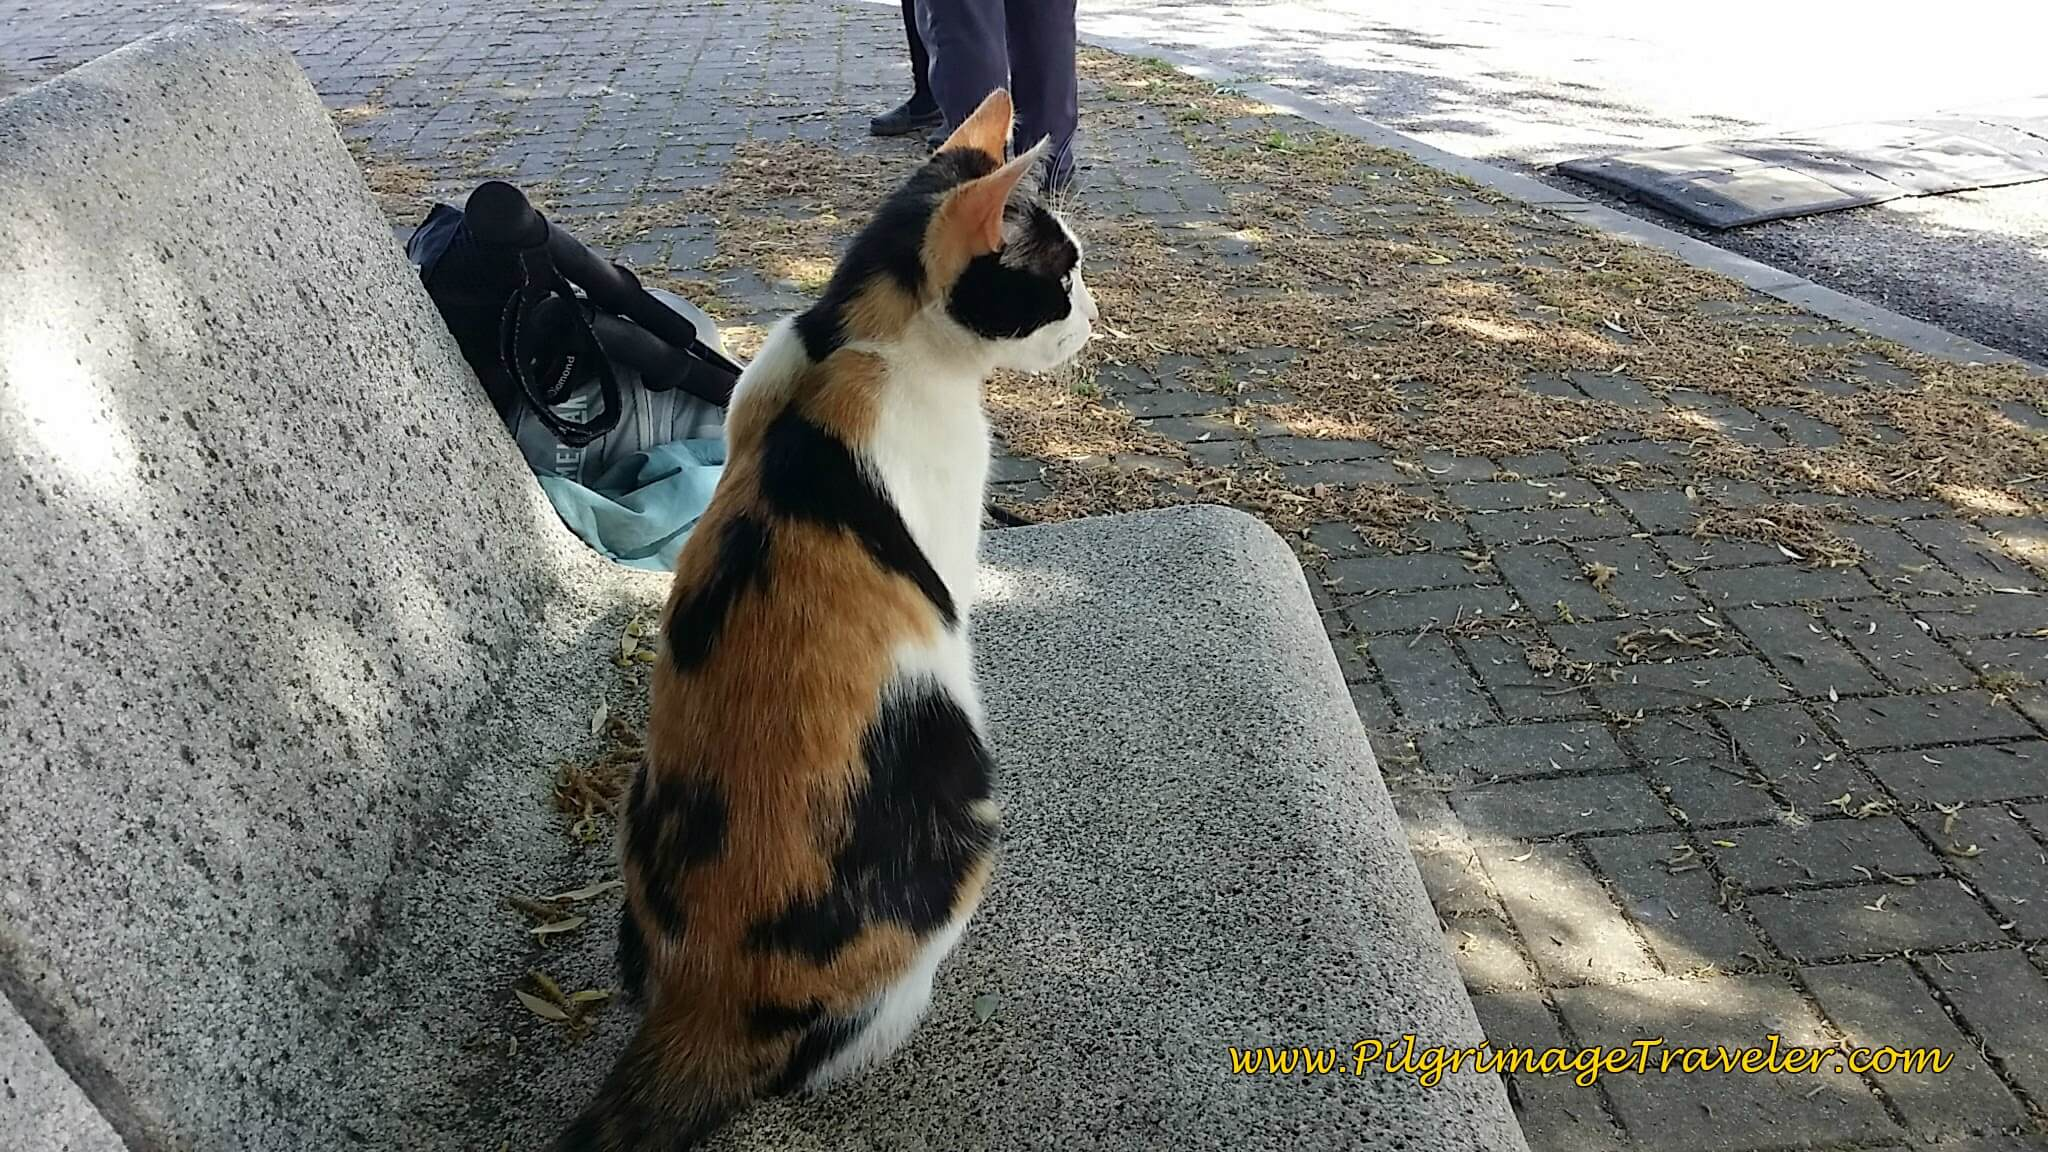 Kitty Comes to the Smell of Canned Tuna on the Camino Portugués